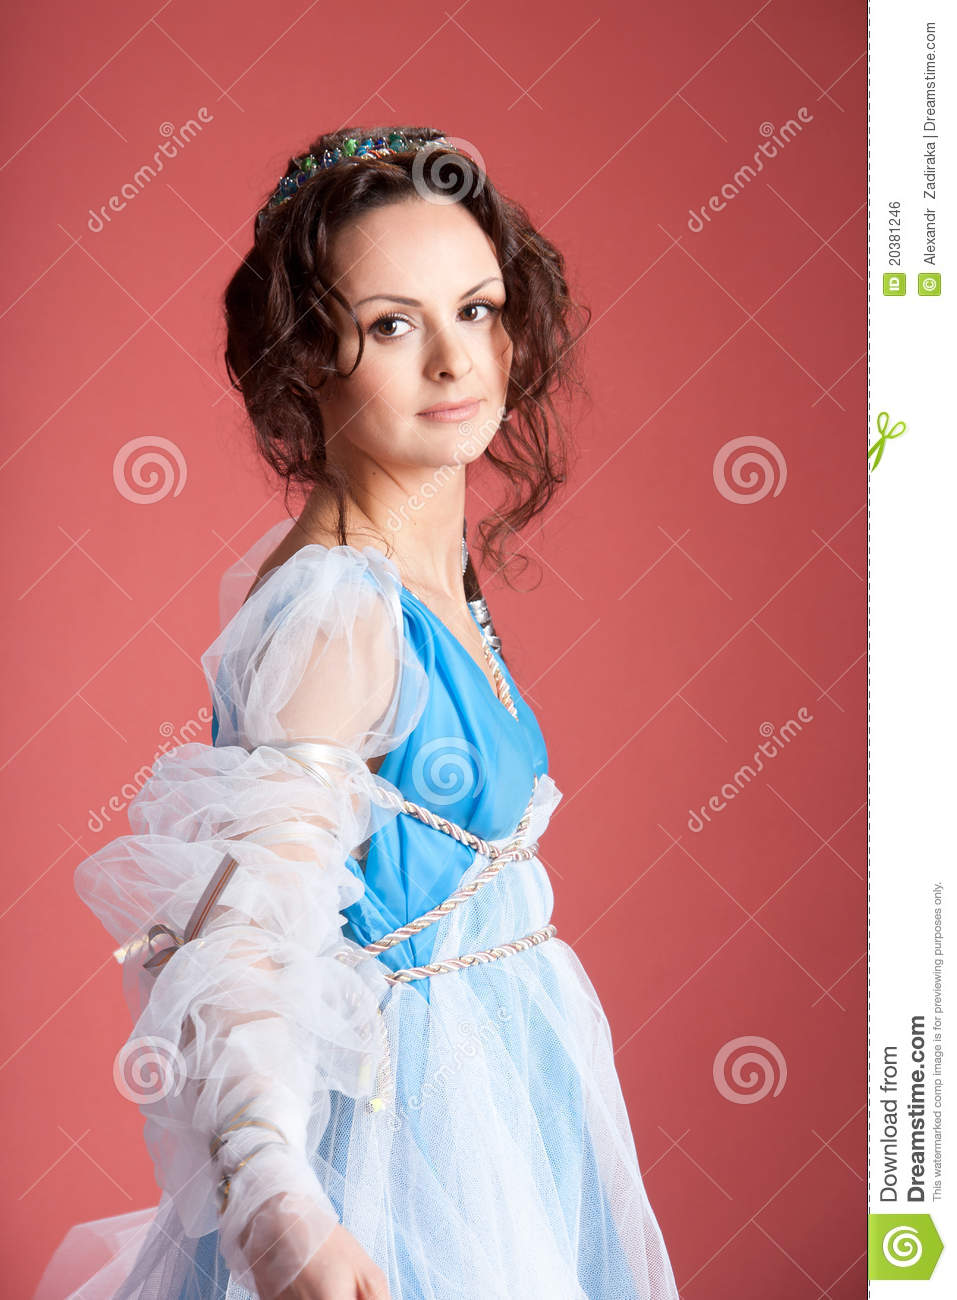 History of fashion design royalty free stock image image for History of fashion designers